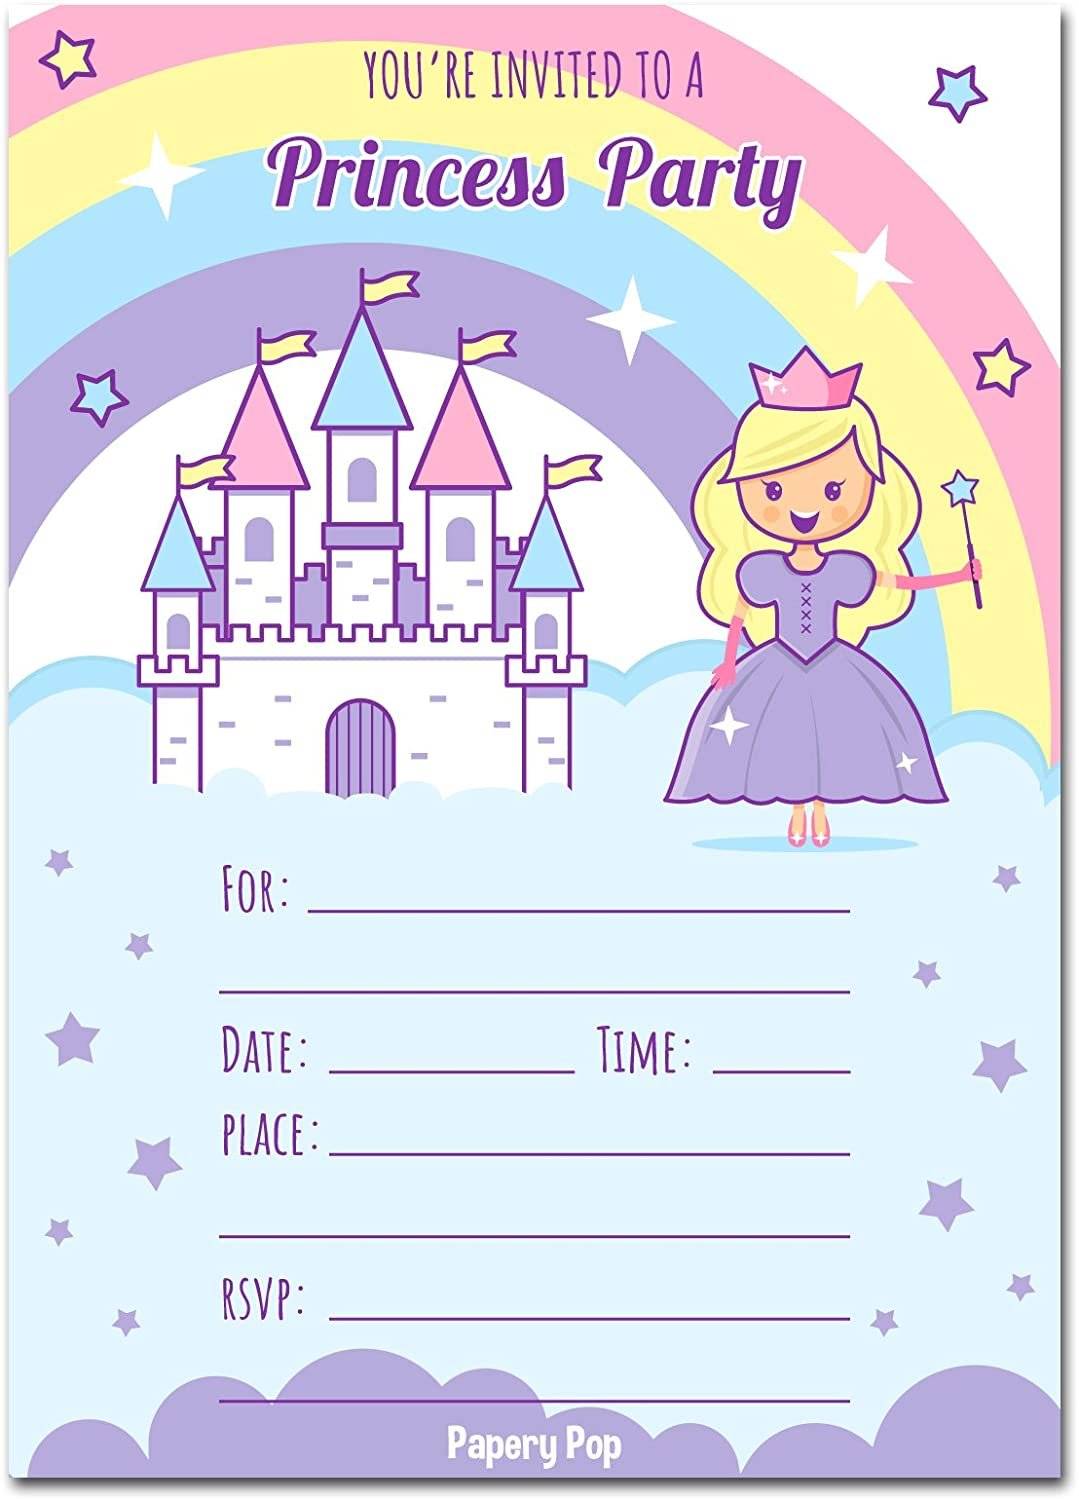 Papery Pop Princess Birthday Invitations with Envelopes 15 Count Kids Birthday Party Invitations for Girls